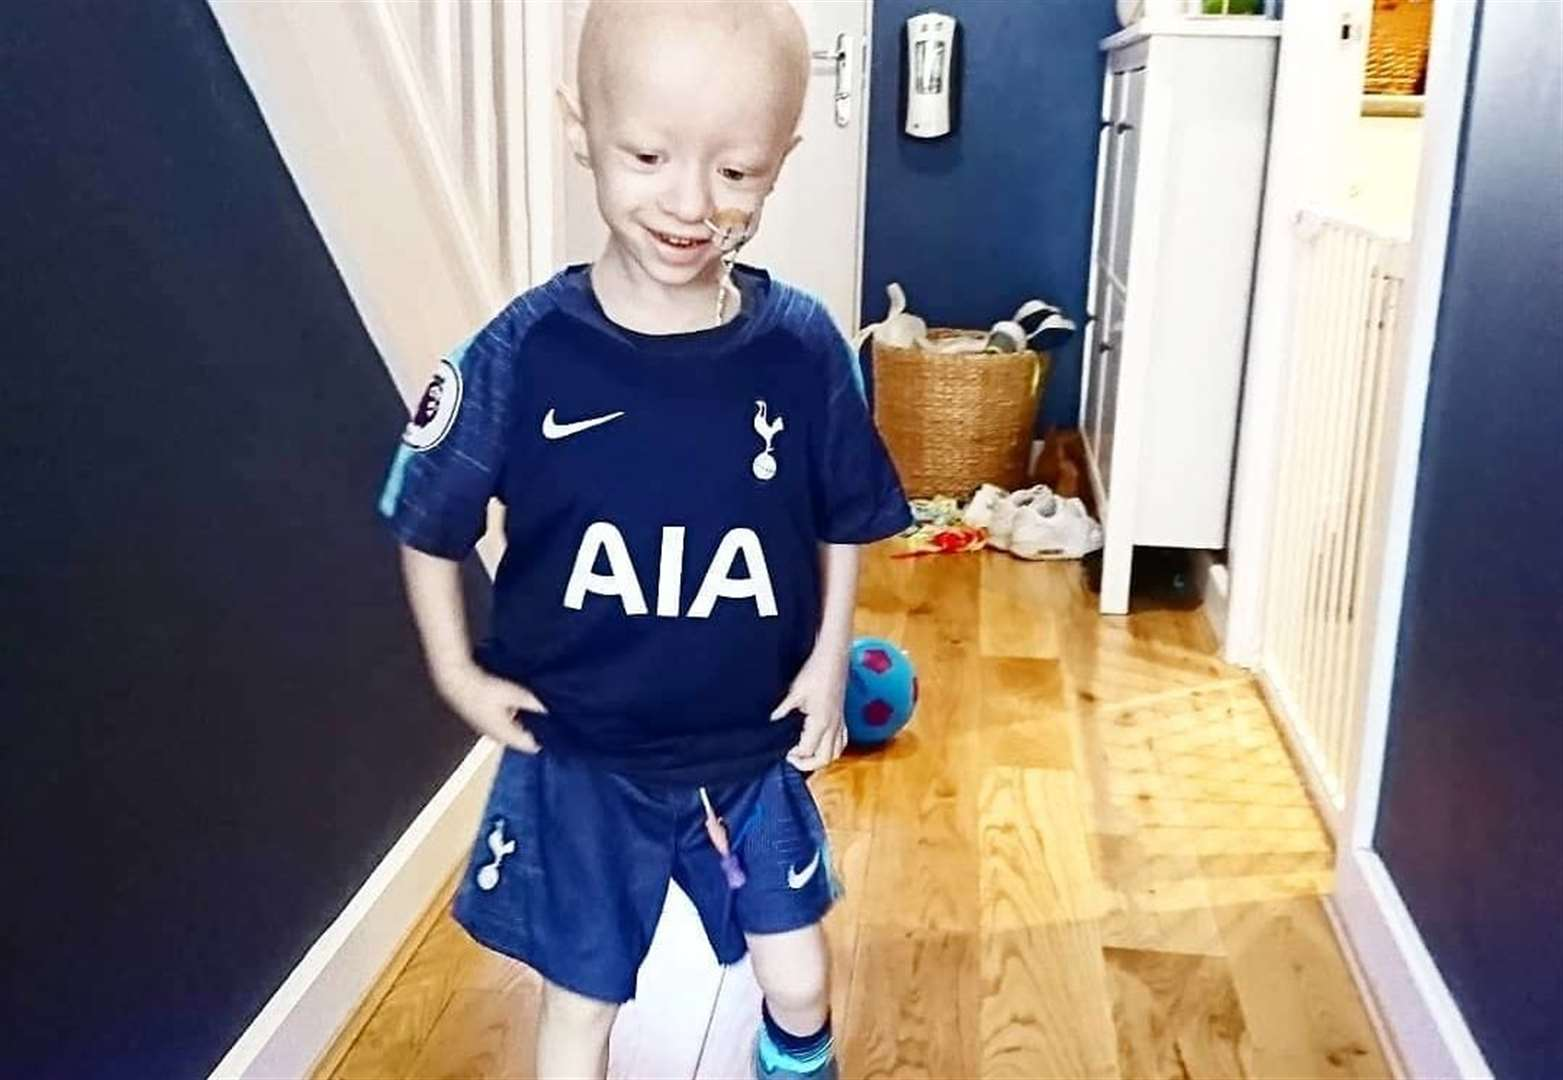 Harry Kane boosts £200,000 appeal for three-year-old Archie's cancer treatment fund